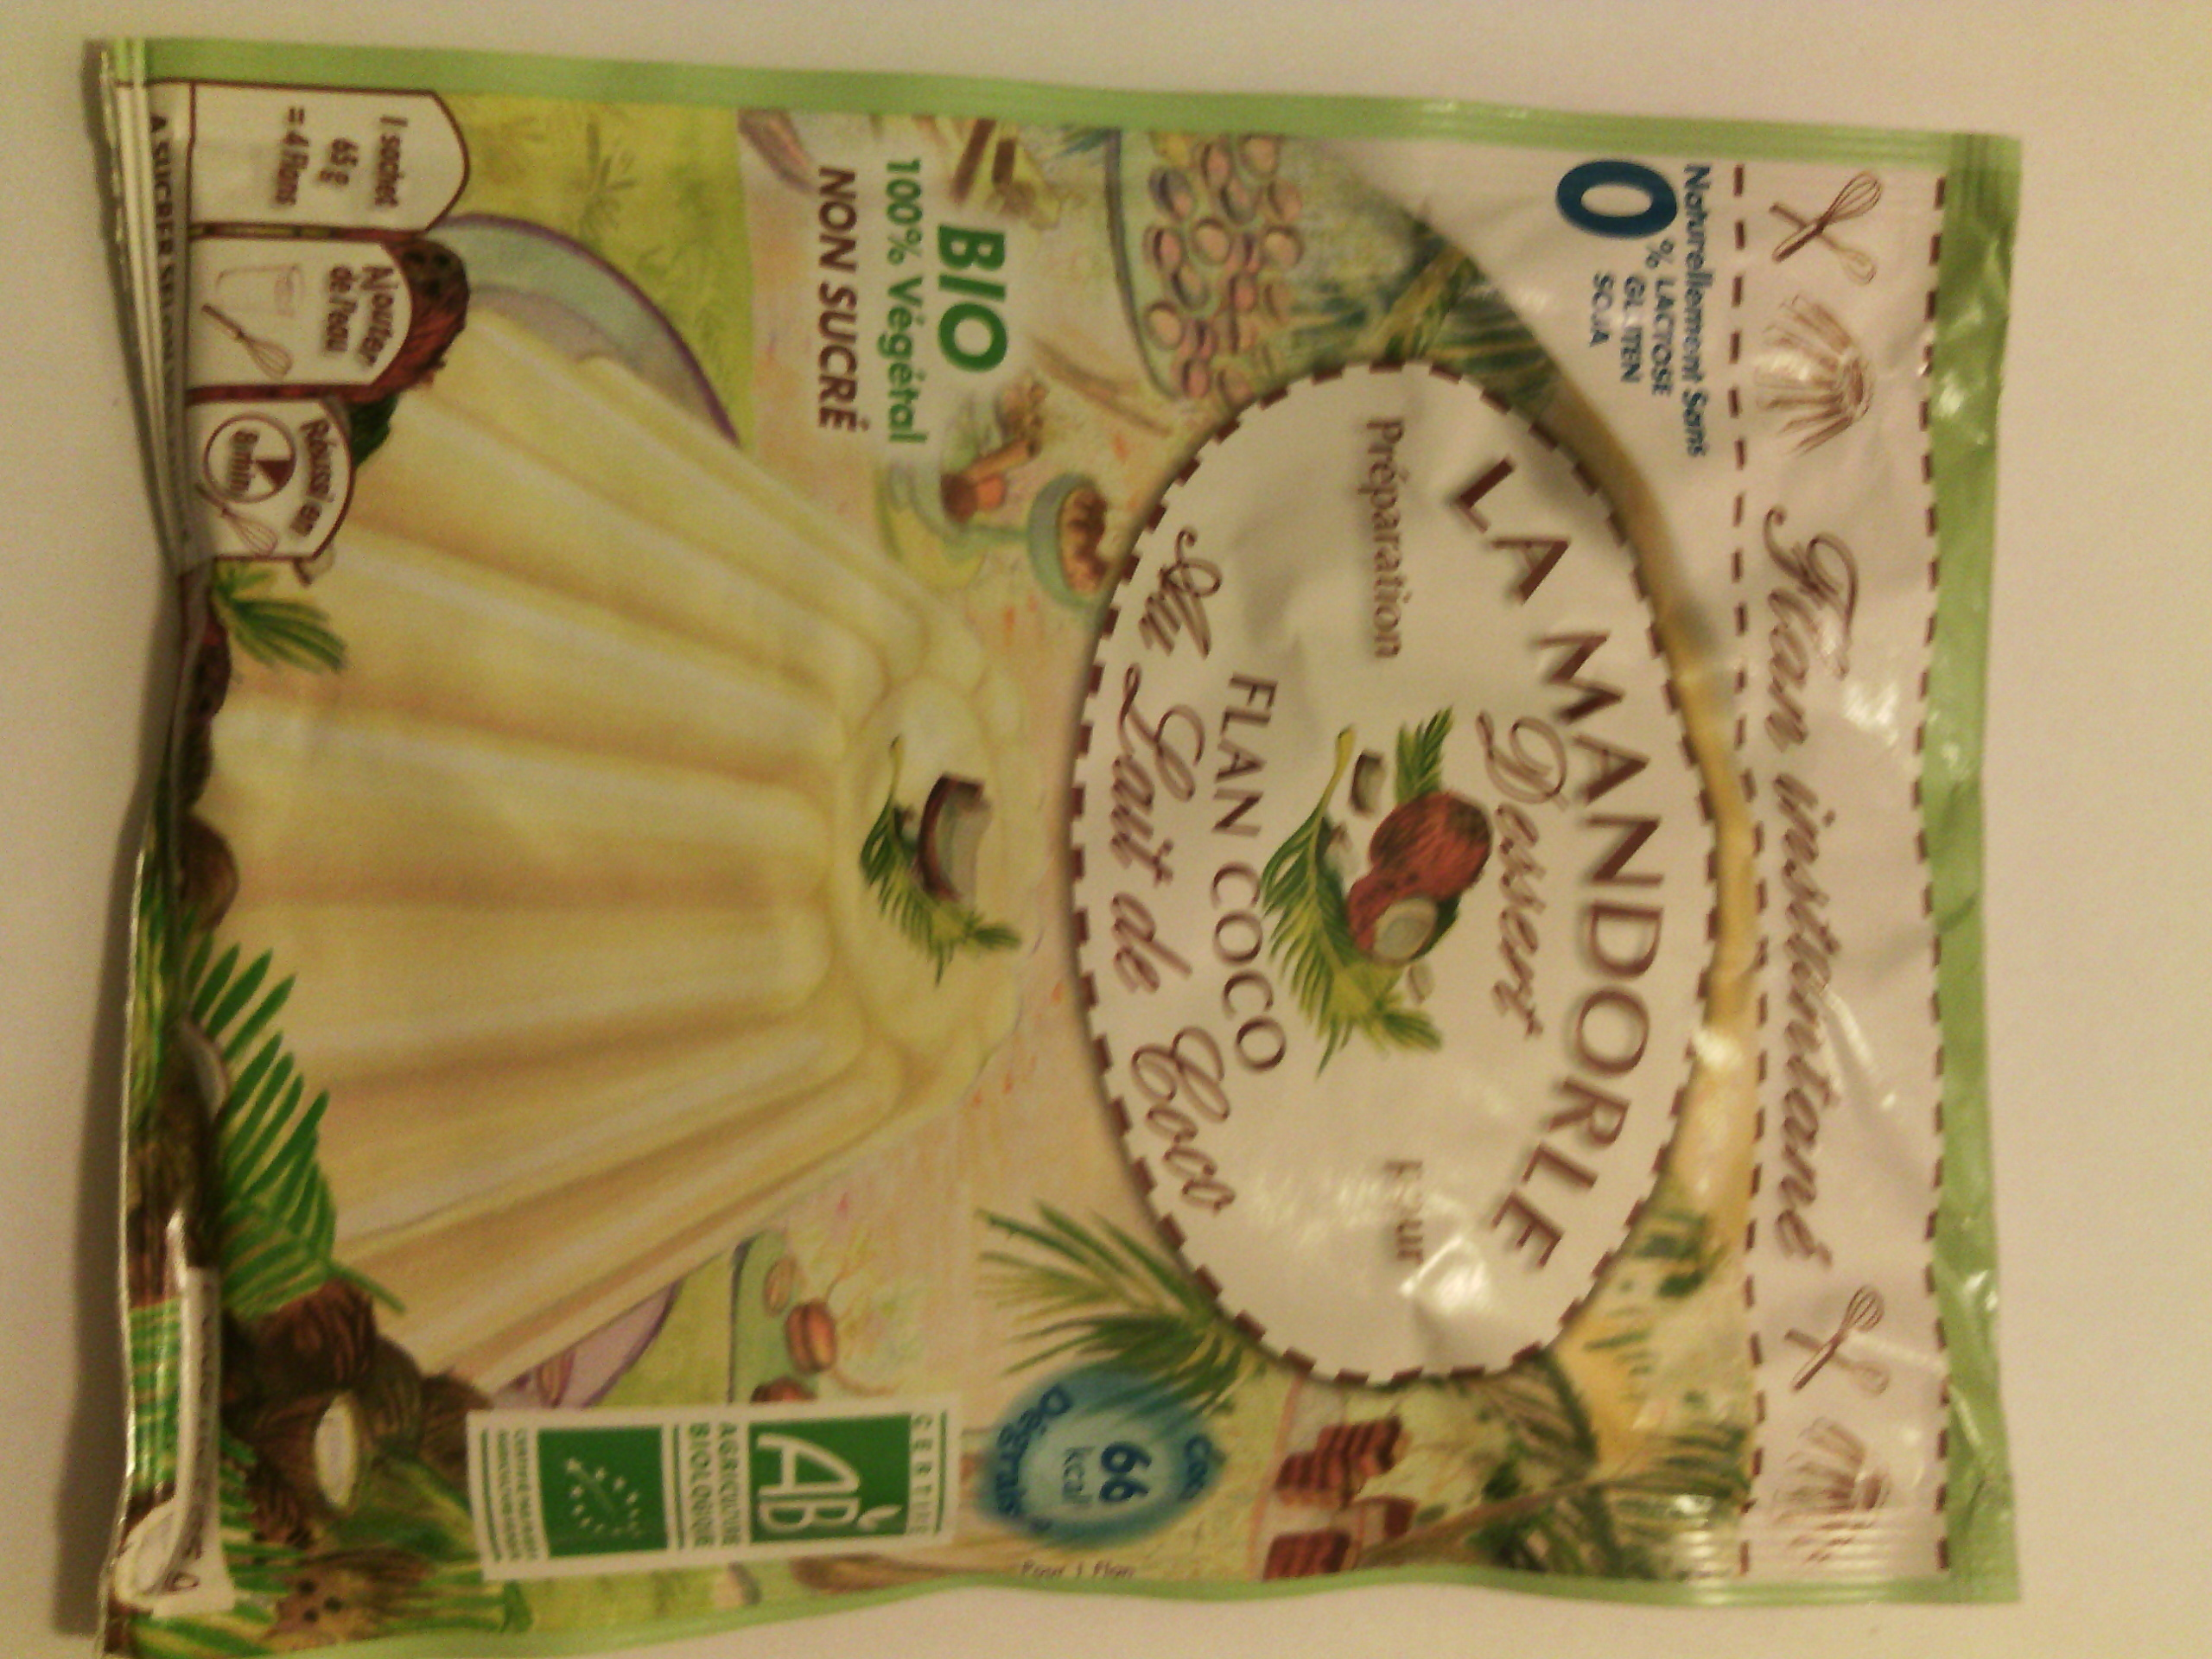 Flan coco - Product